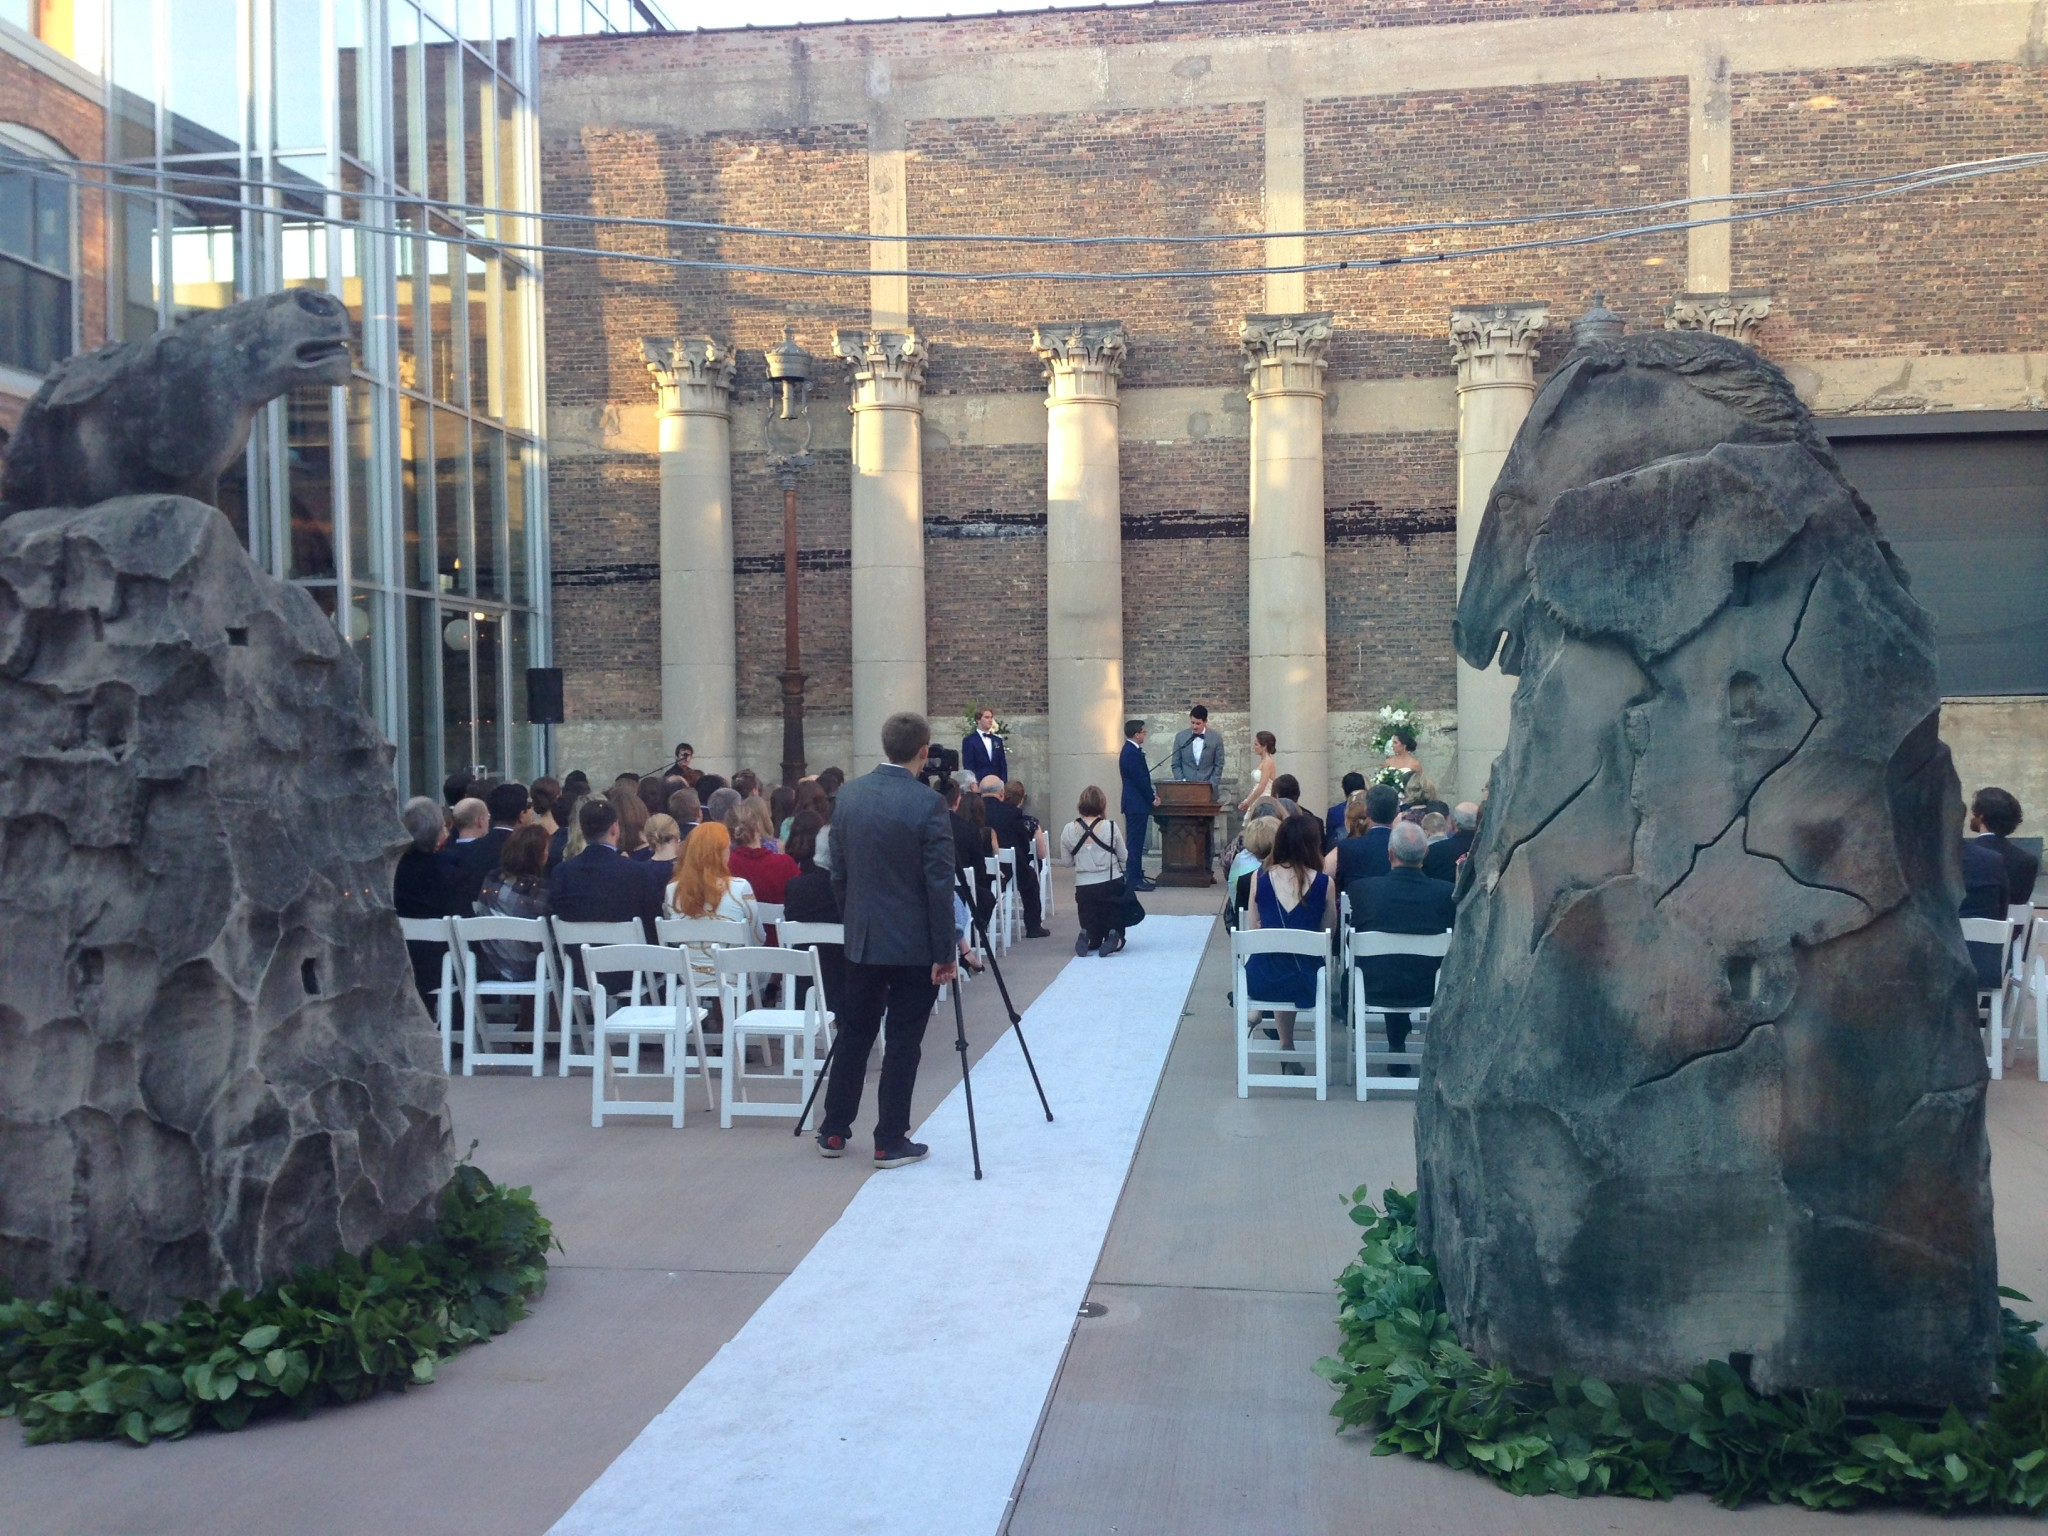 Architectural Artifacts Does Weddings